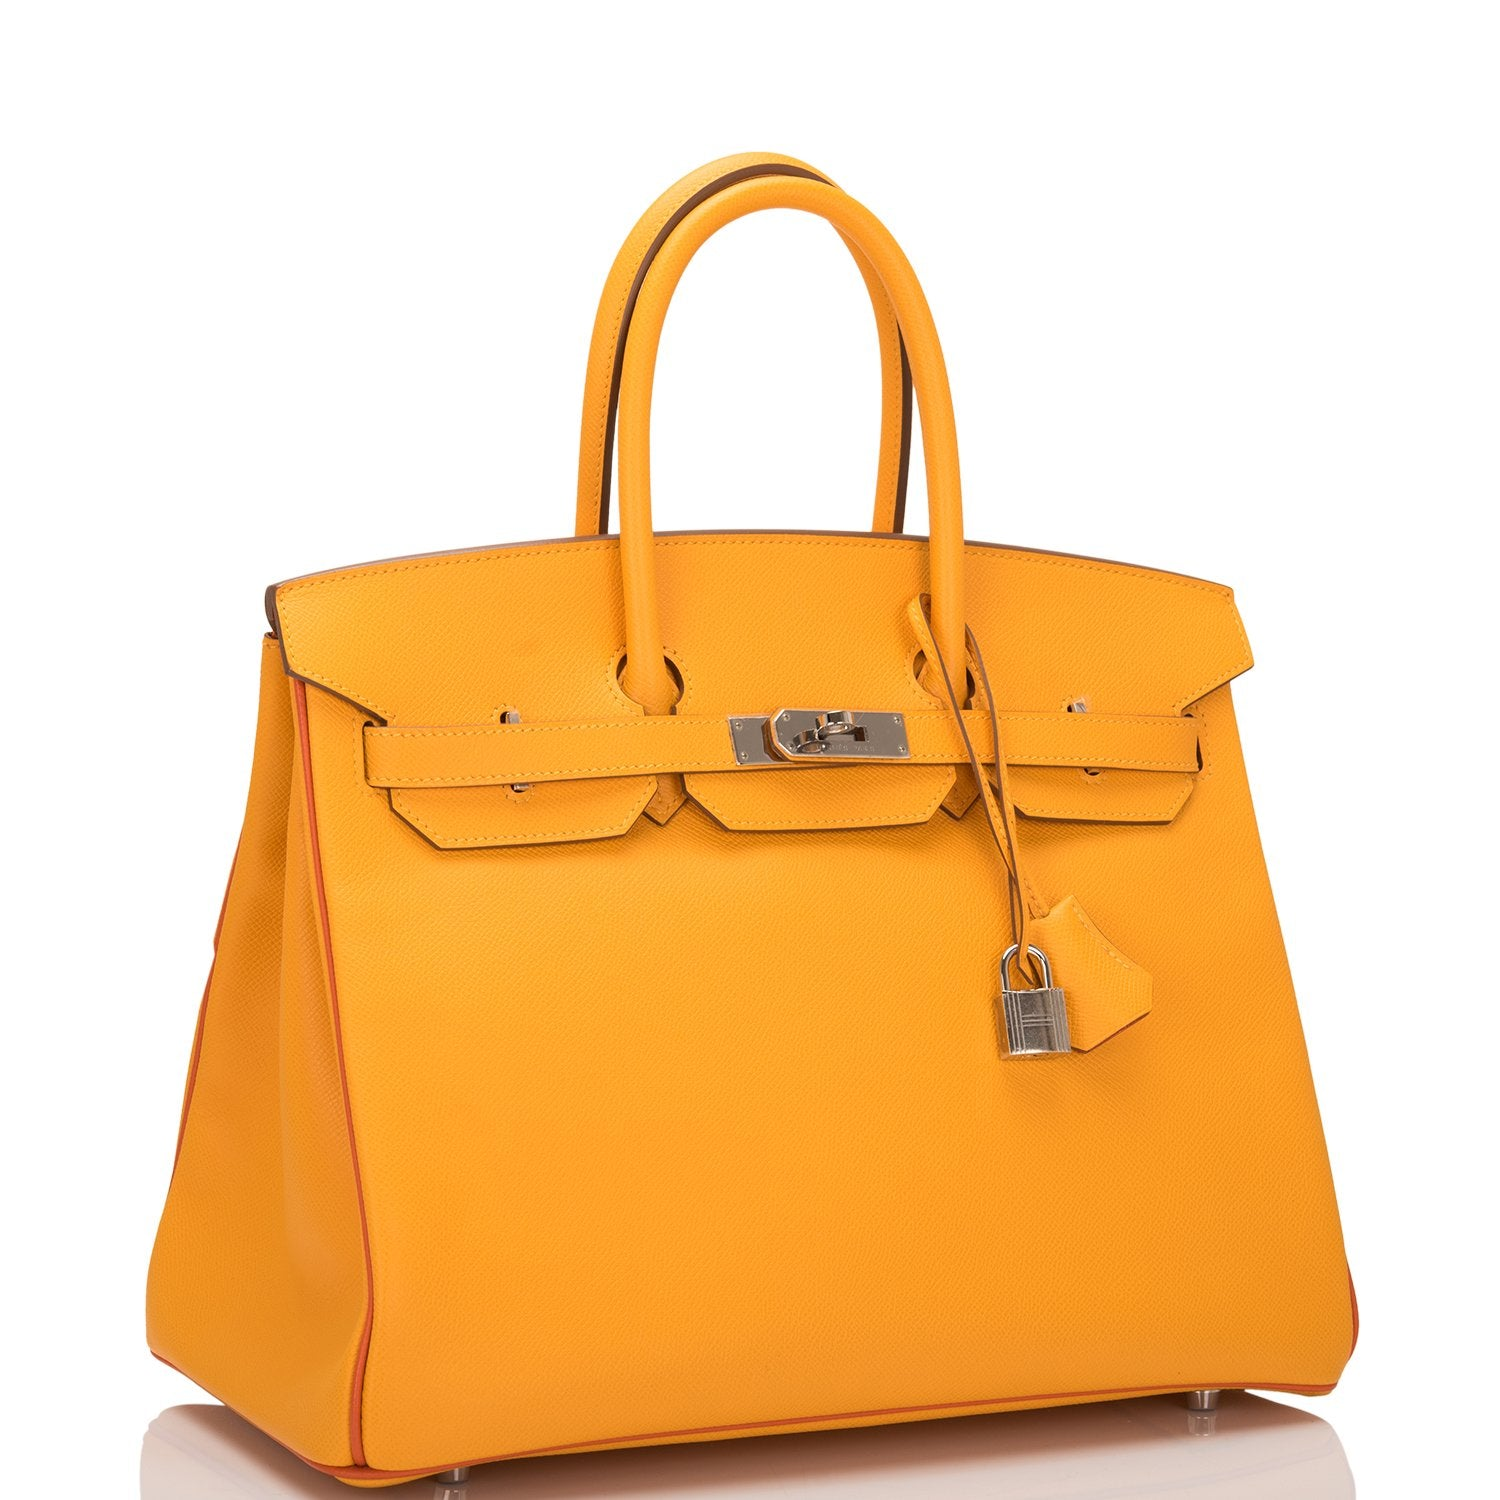 179e08b03817 Hermes HSS SO Bi-Color Jaune D Or and Sanguine Epsom Birkin 35cm PHW –  Madison Avenue Couture